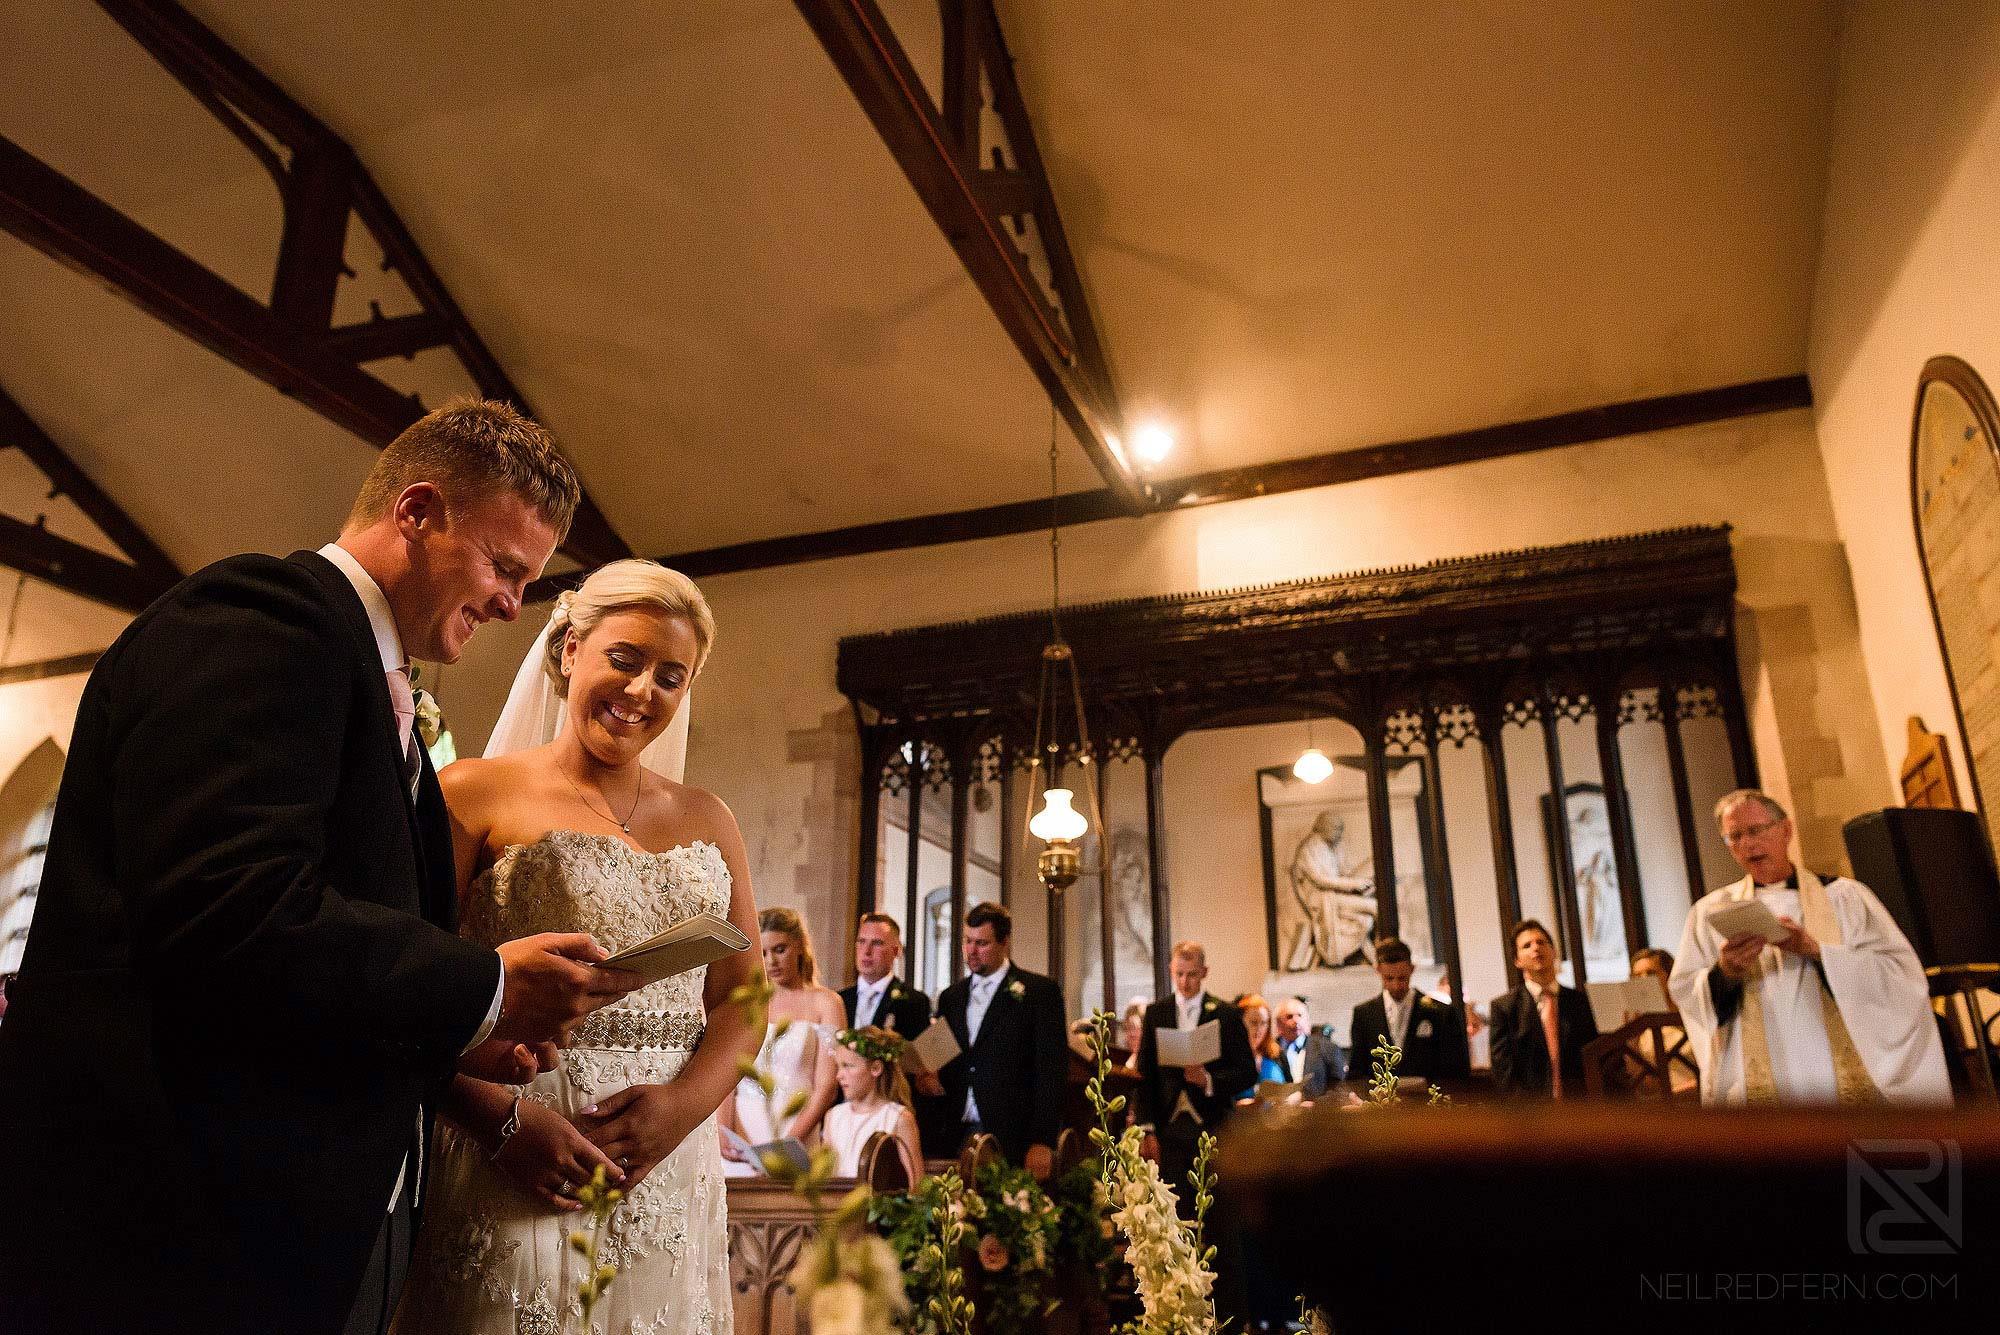 newlyweds smiling during wedding ceremony in Church